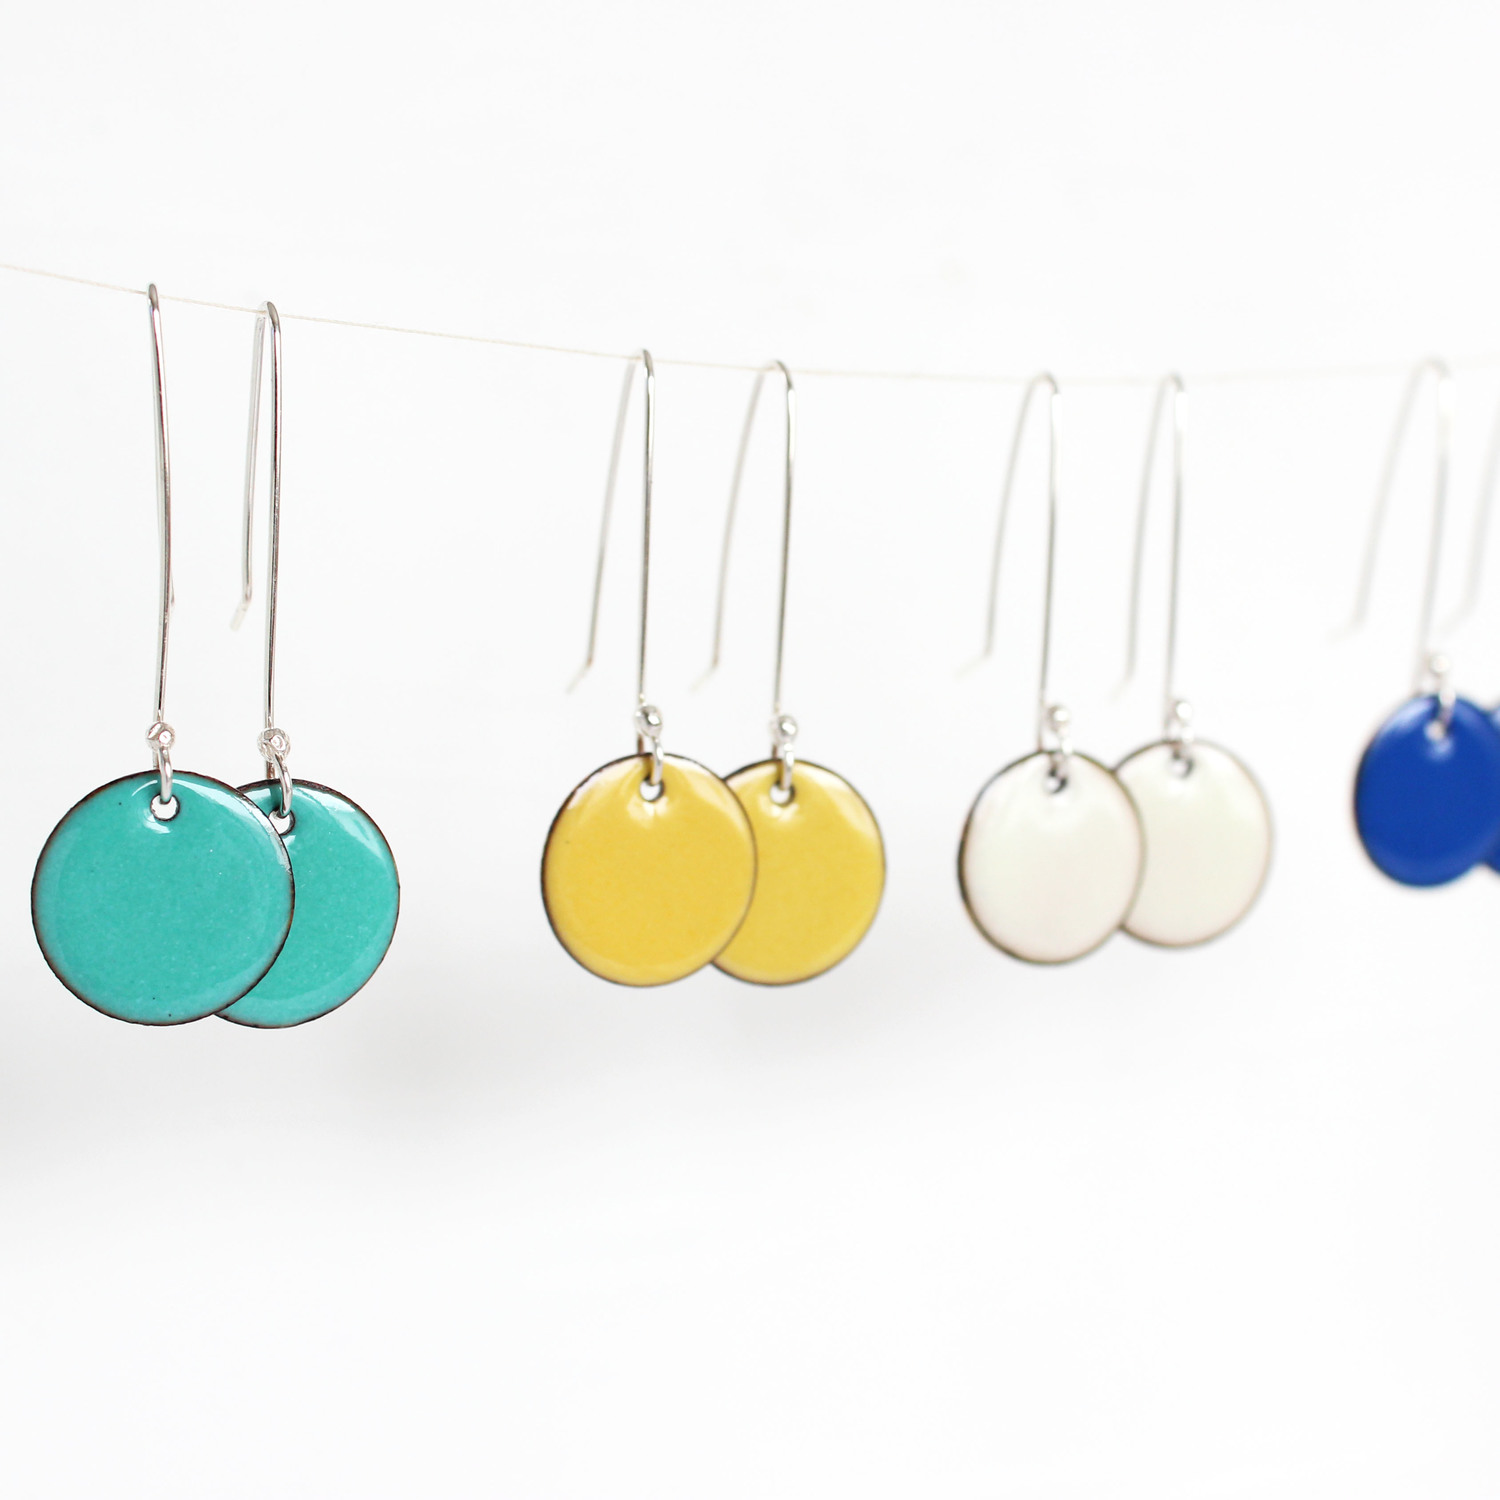 Enfuse Jewelry's Boutique Collection offers a vibrant array of colors and styles